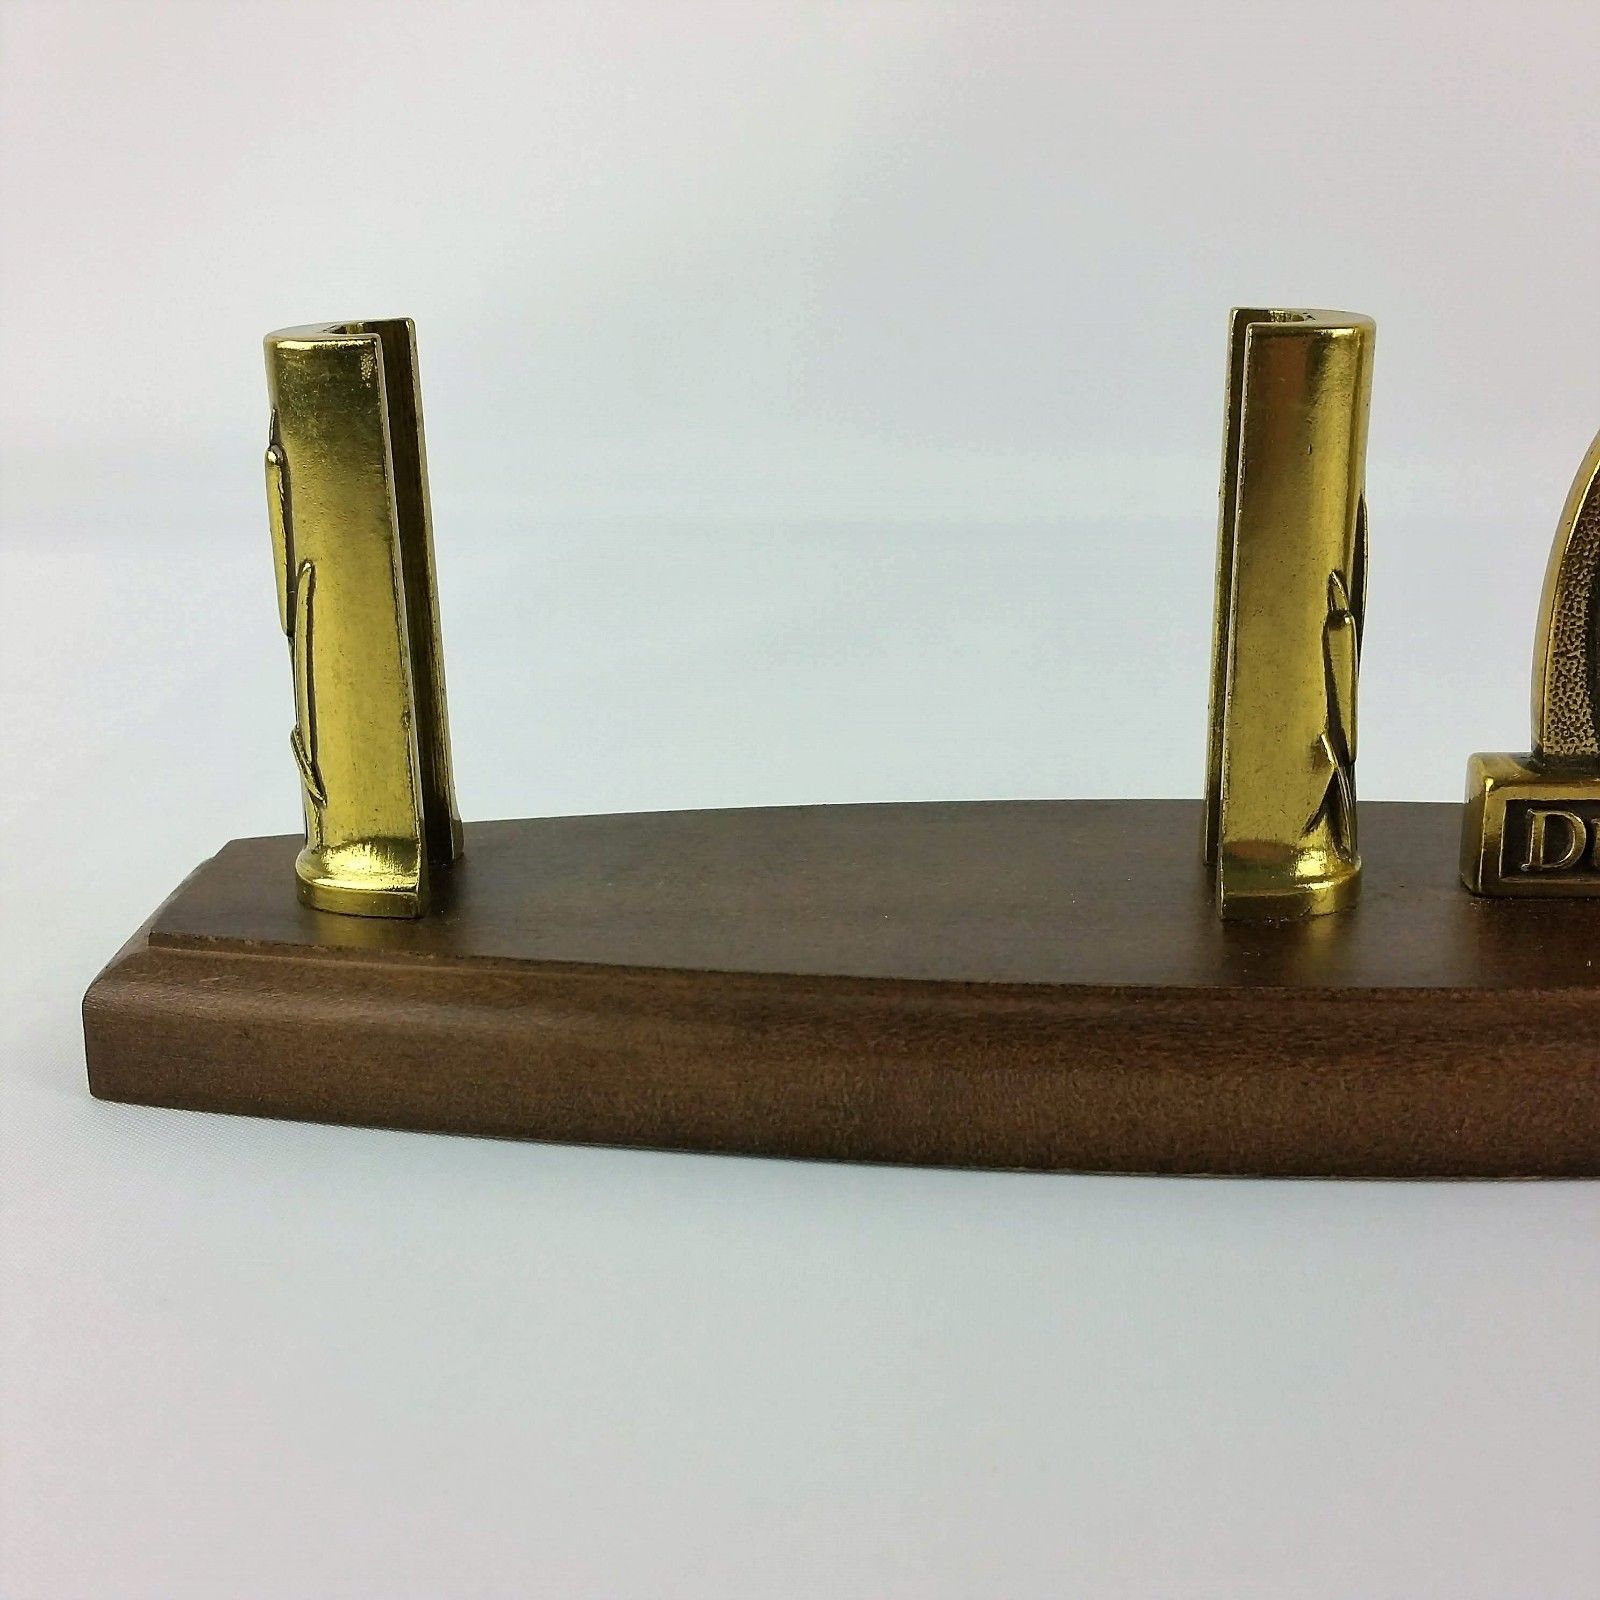 Ducks Unlimited Business Card Holder Brass And Wood Vintage Vtg Made in Taiwan